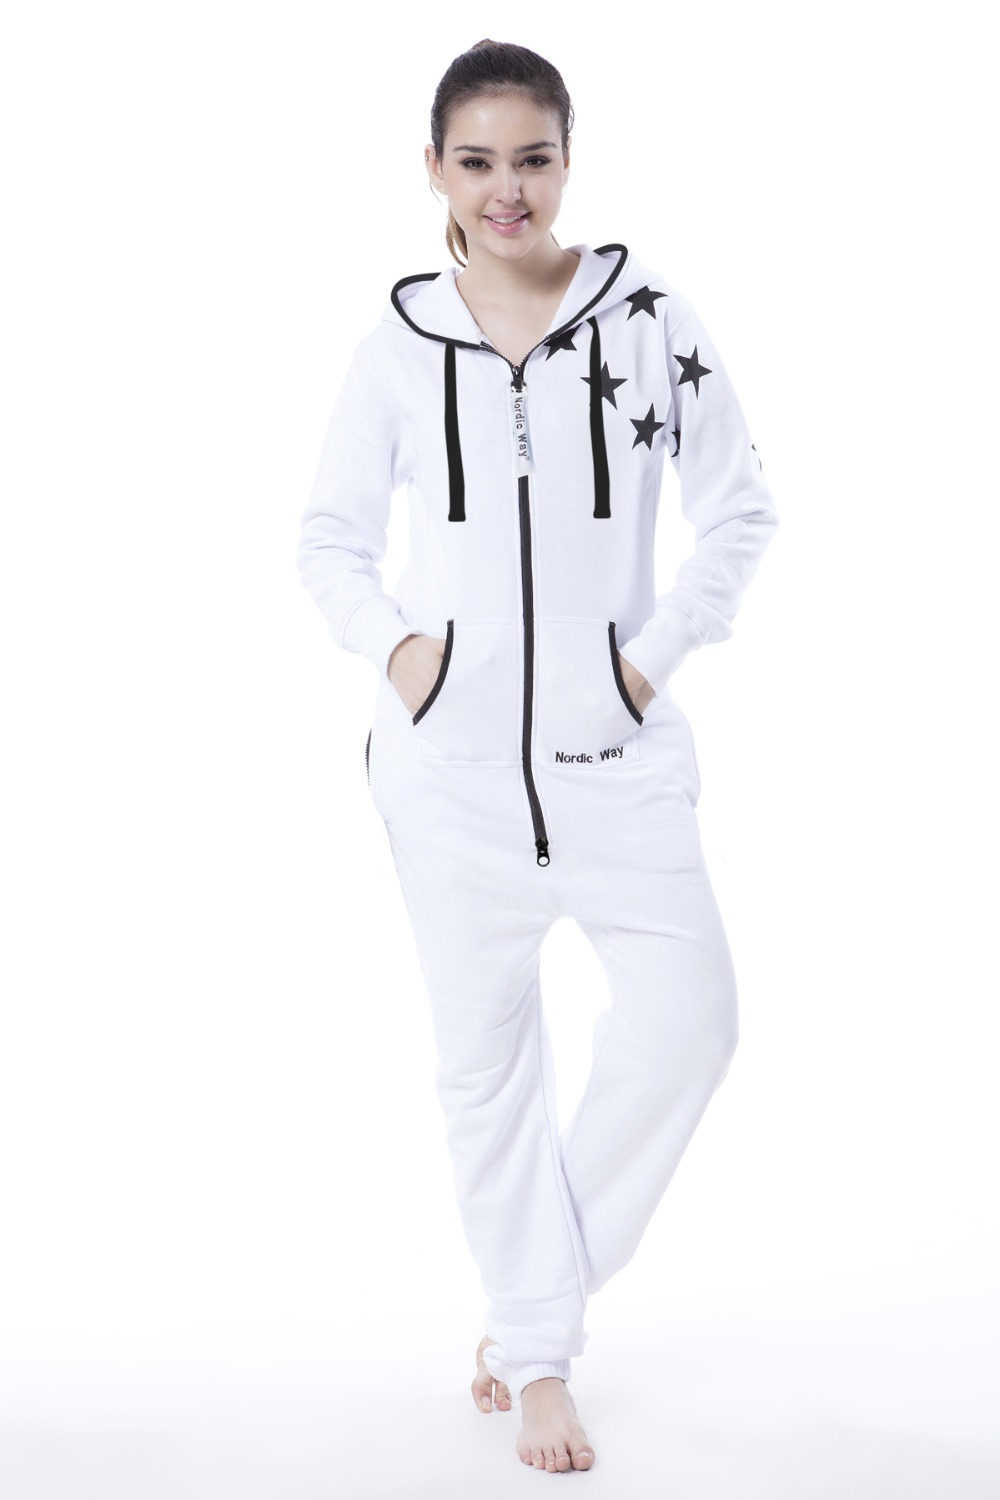 5b2d00da5793 Buy jumpsuit nordic way and get free shipping on AliExpress.com